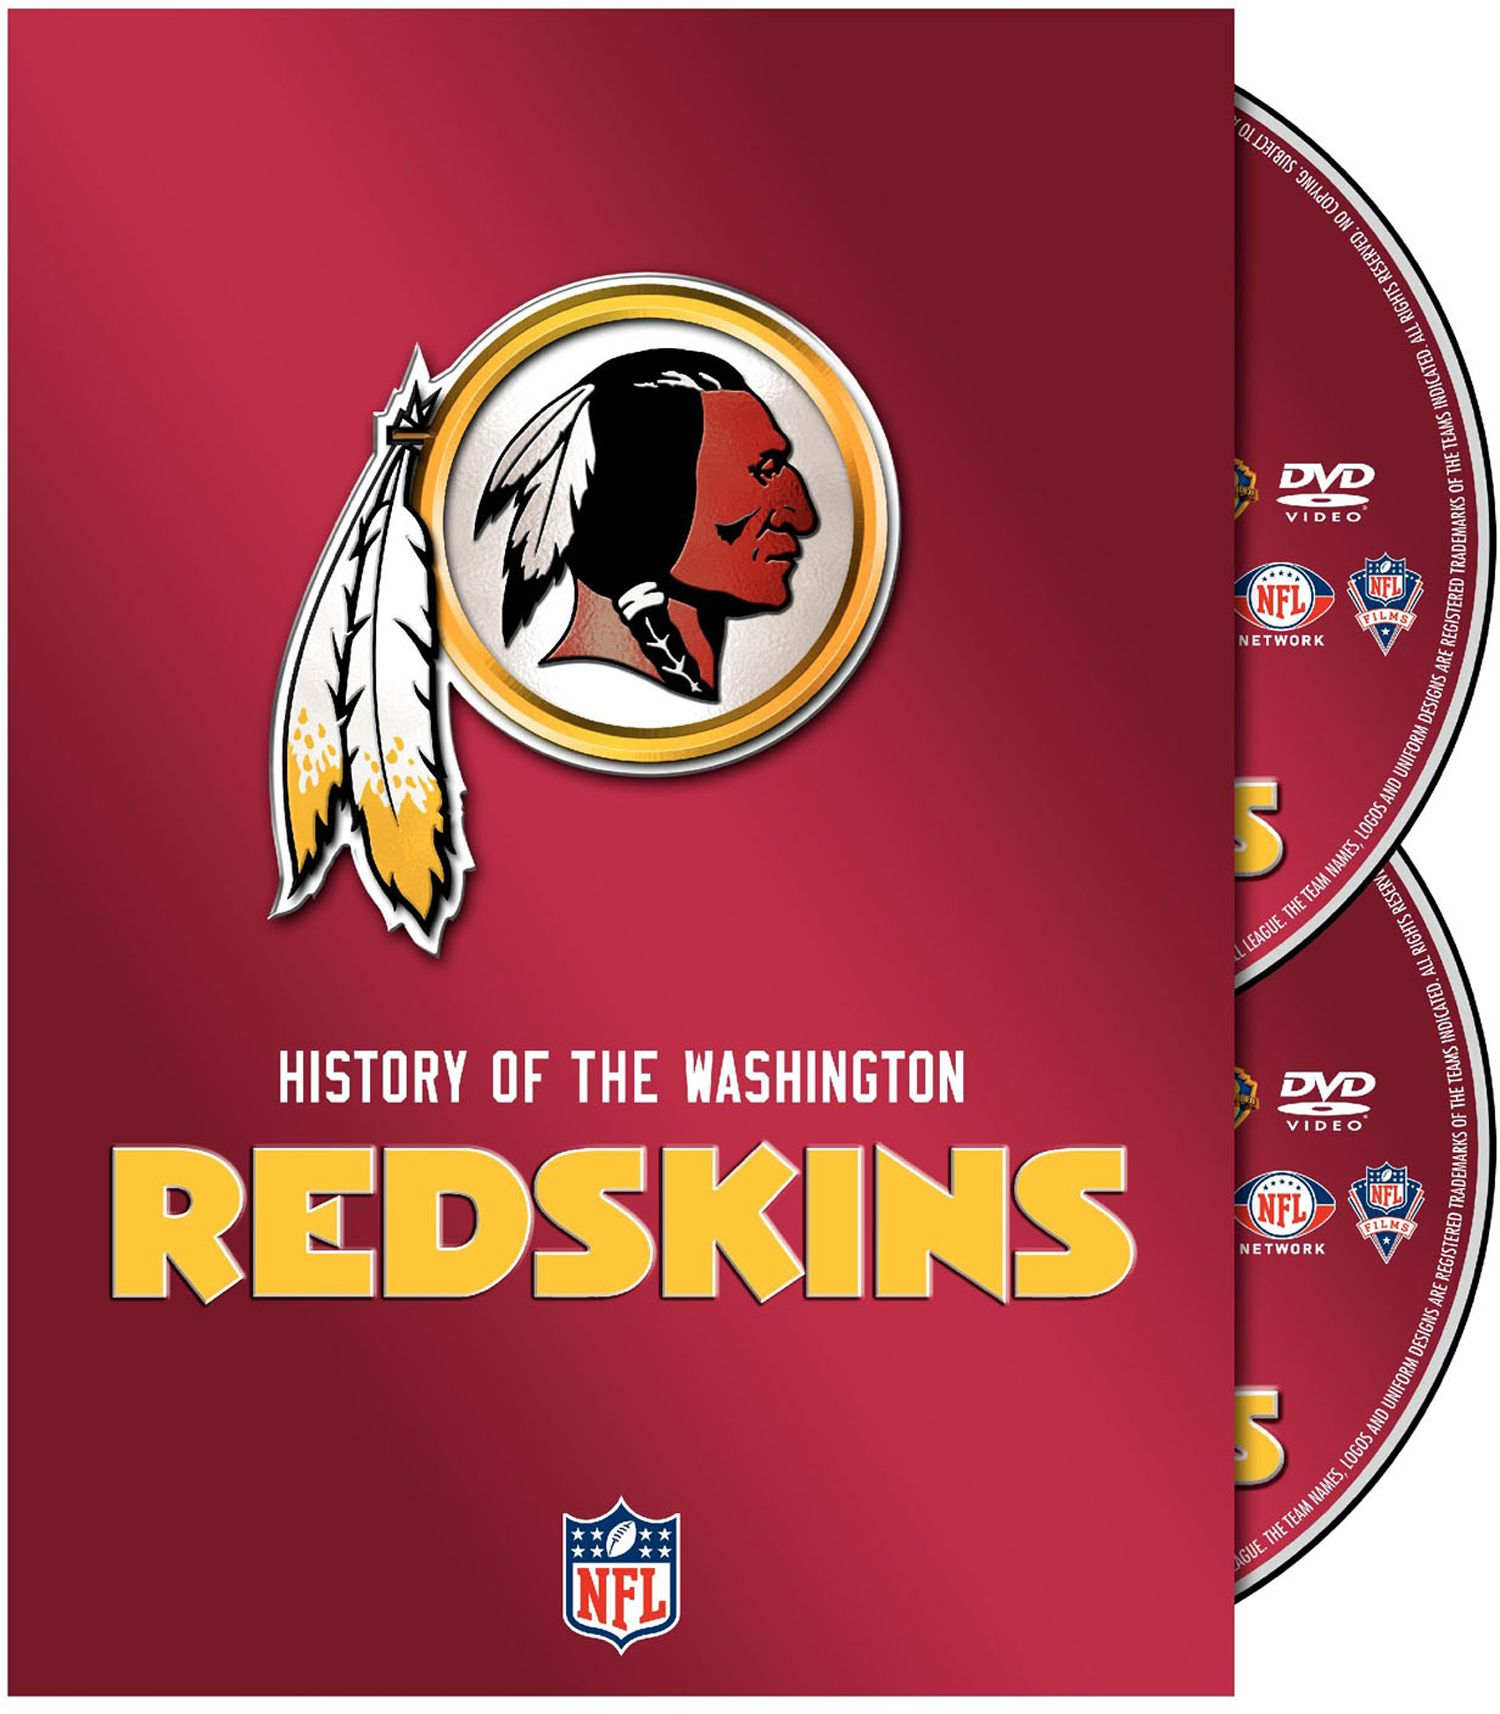 history of the washington redskins dvd set u0027s sporting goods